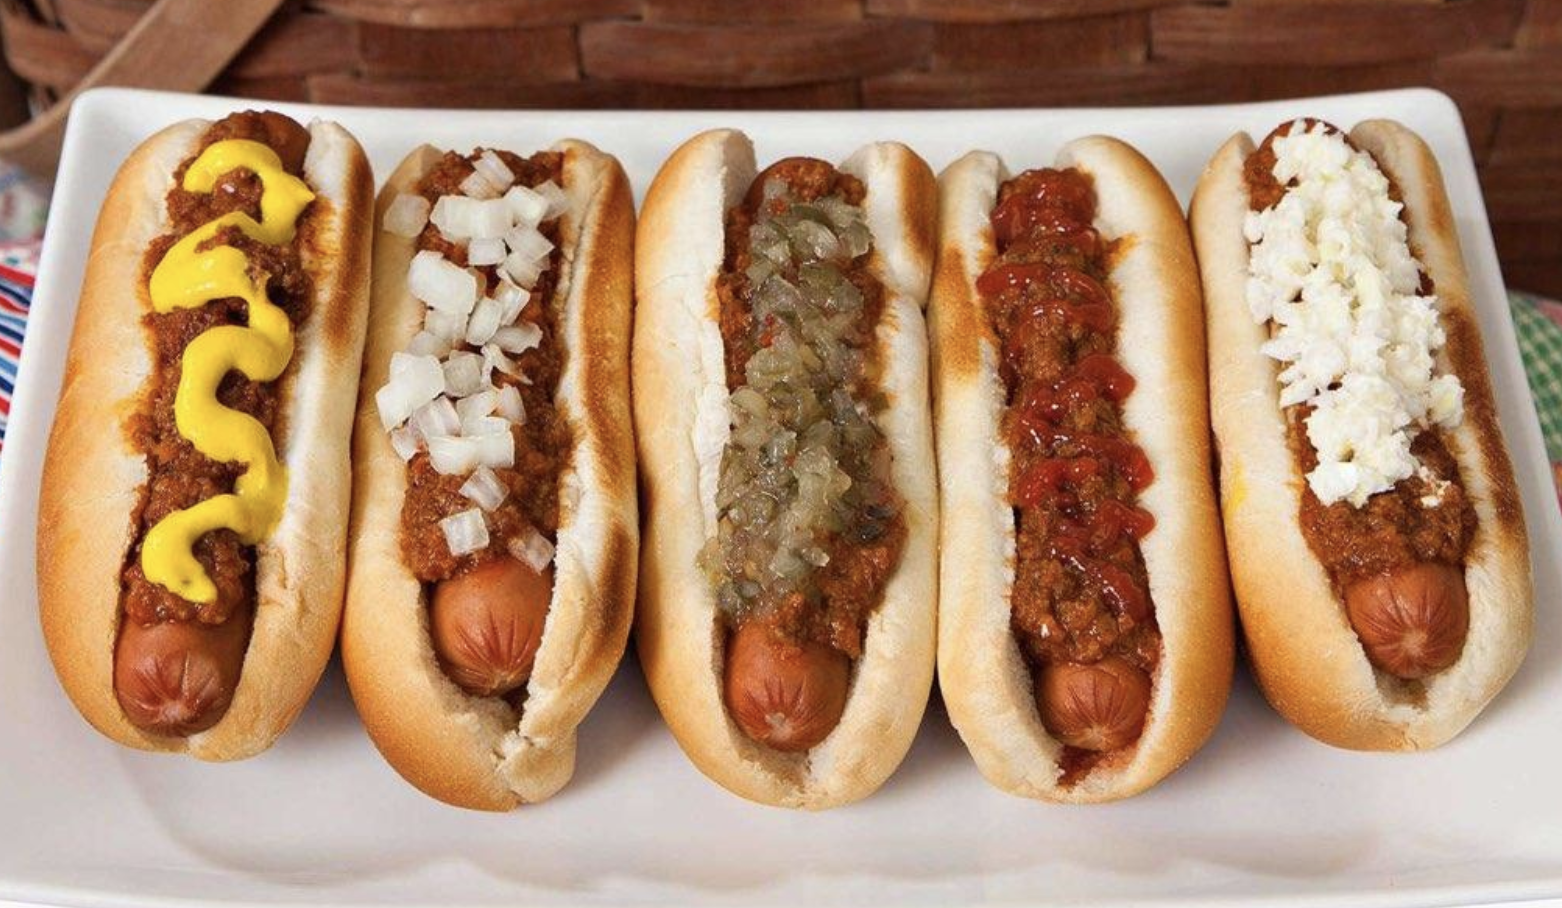 fancy hot dog' and frito pie maker doggy style opens in waterford